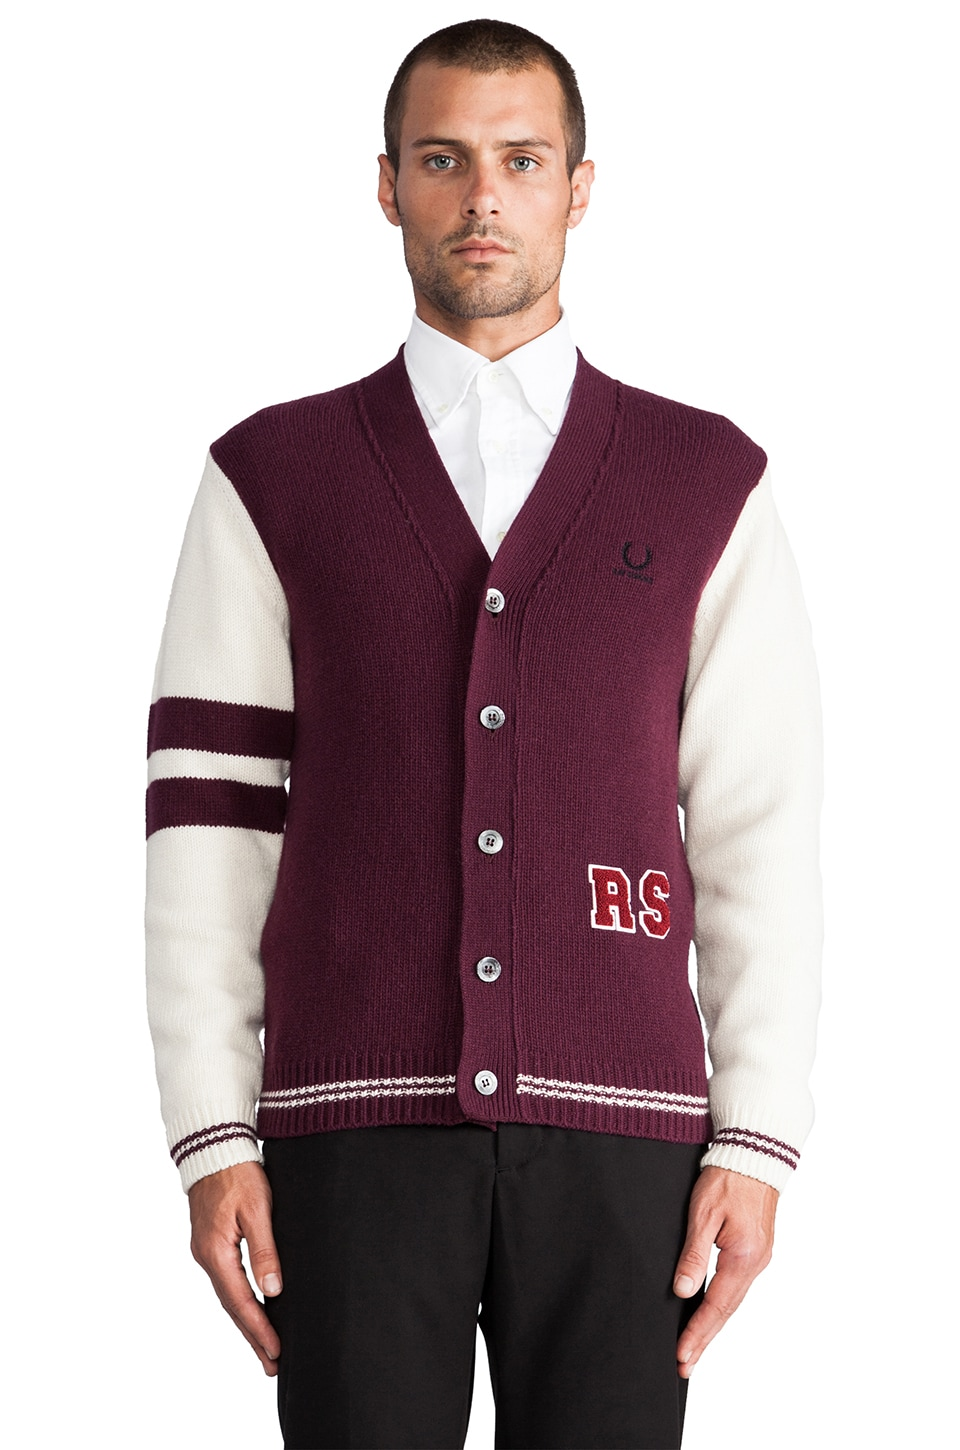 Fred Perry x Raf Simons Knitted Cardigan in Deep Burgundy